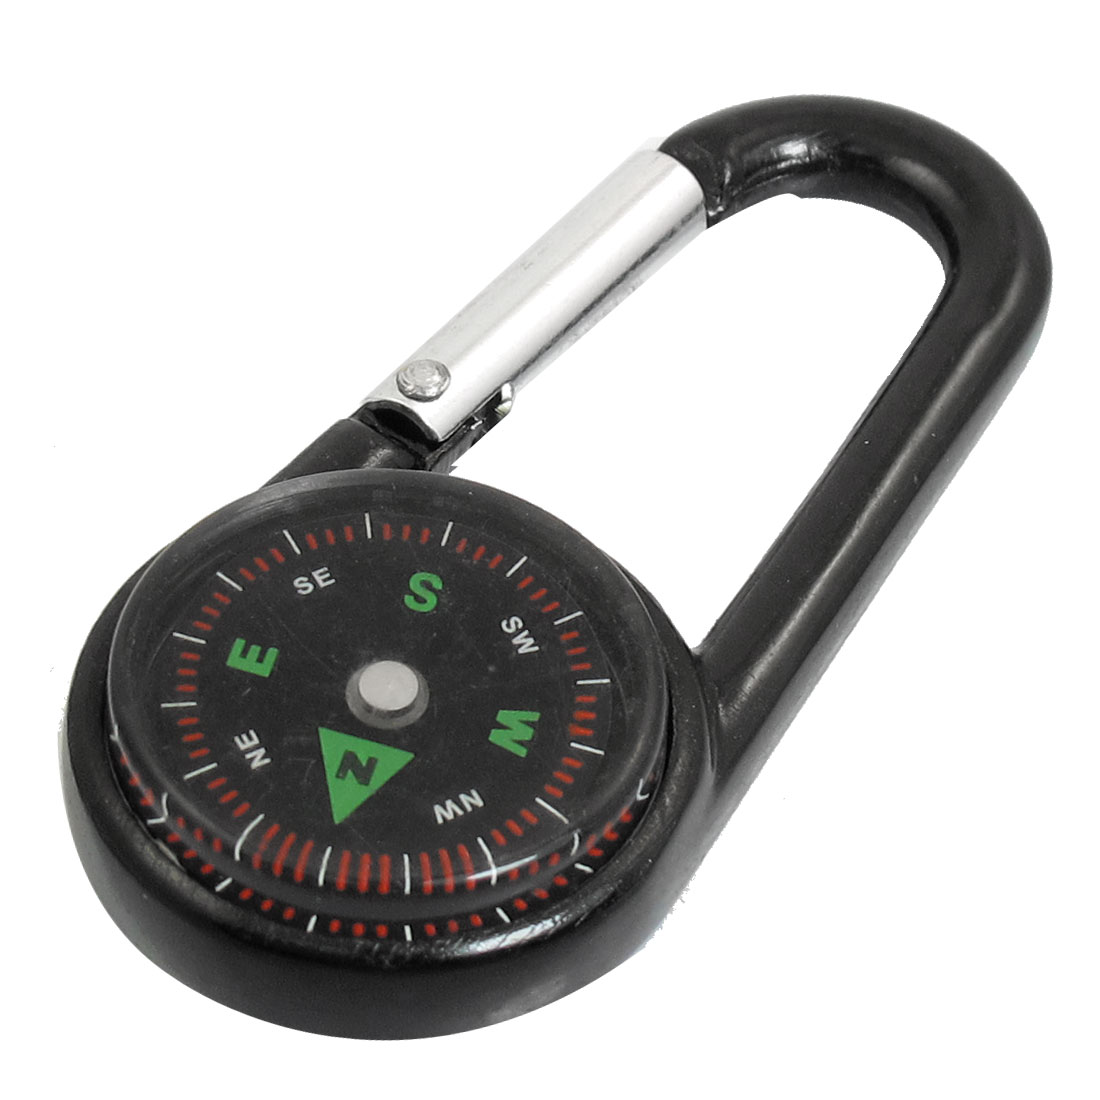 Black Aluminum Alloy Spring Loaded Gate Compass Carabiner Hook Clip